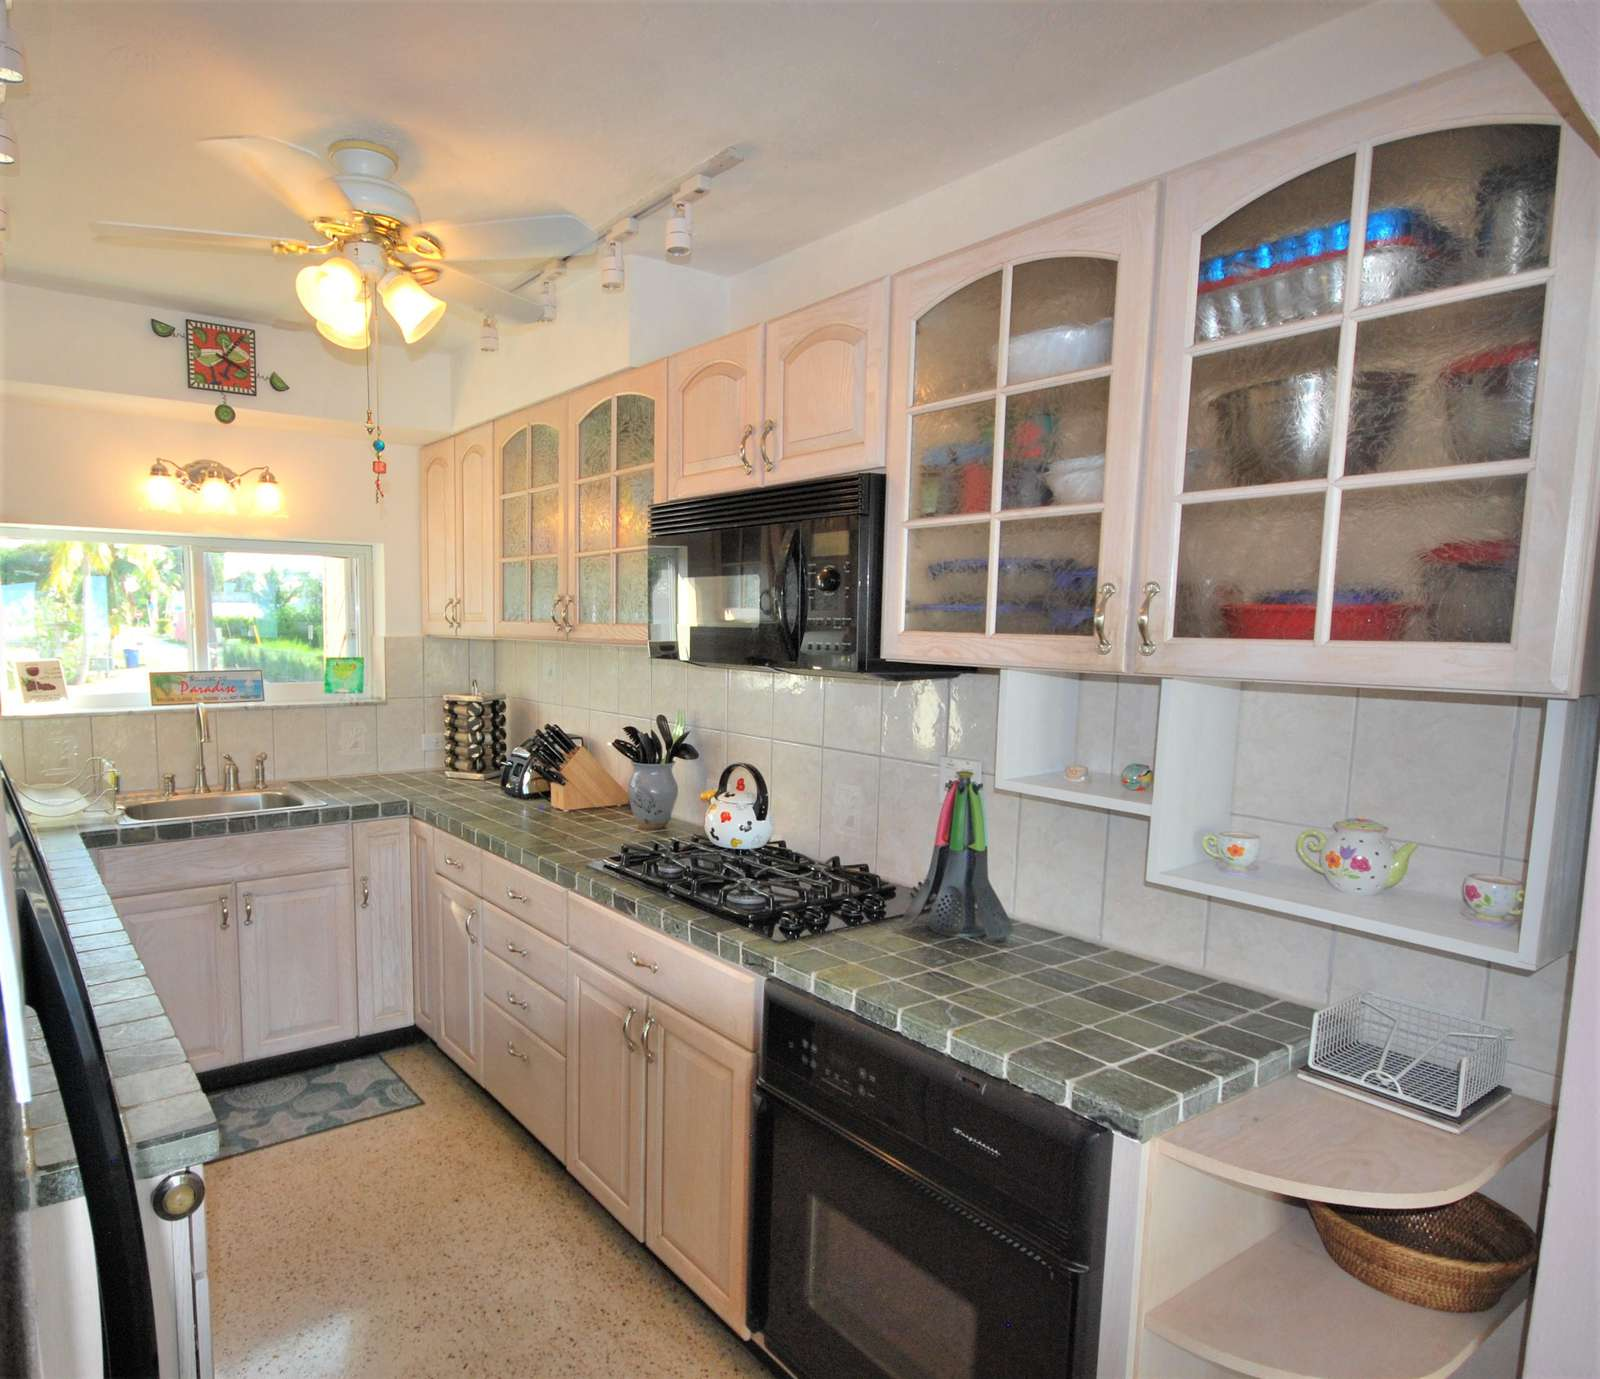 Upgraded Kitchen fully stocked with dishes has Gas rang and Oven and Dishwasher